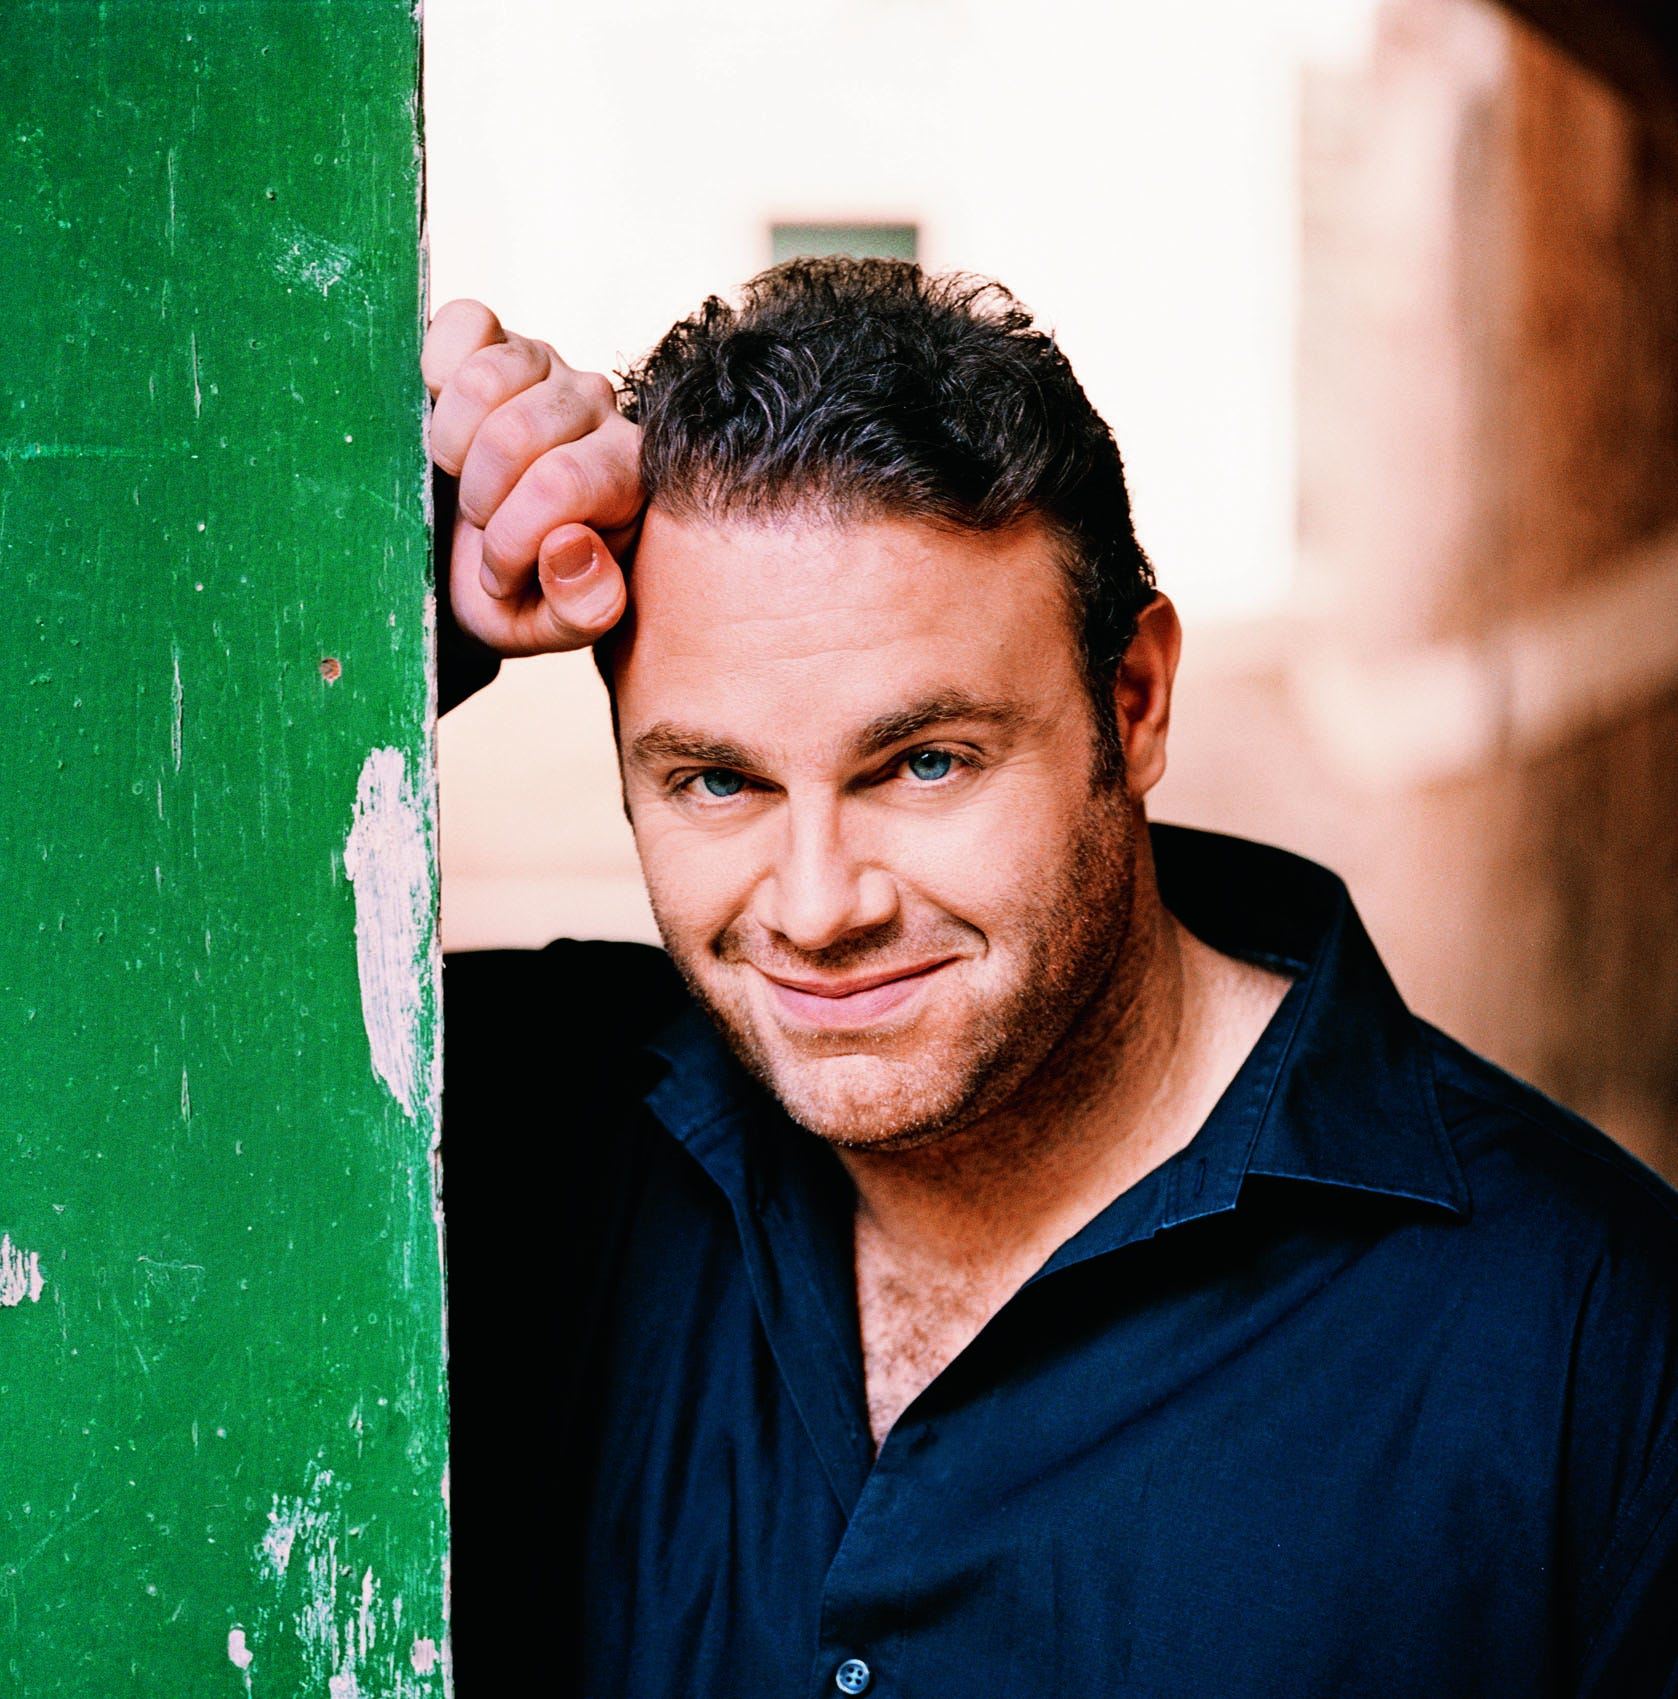 From firing squad to sunny Naples, Joseph Calleja brings his star-power tenor voice